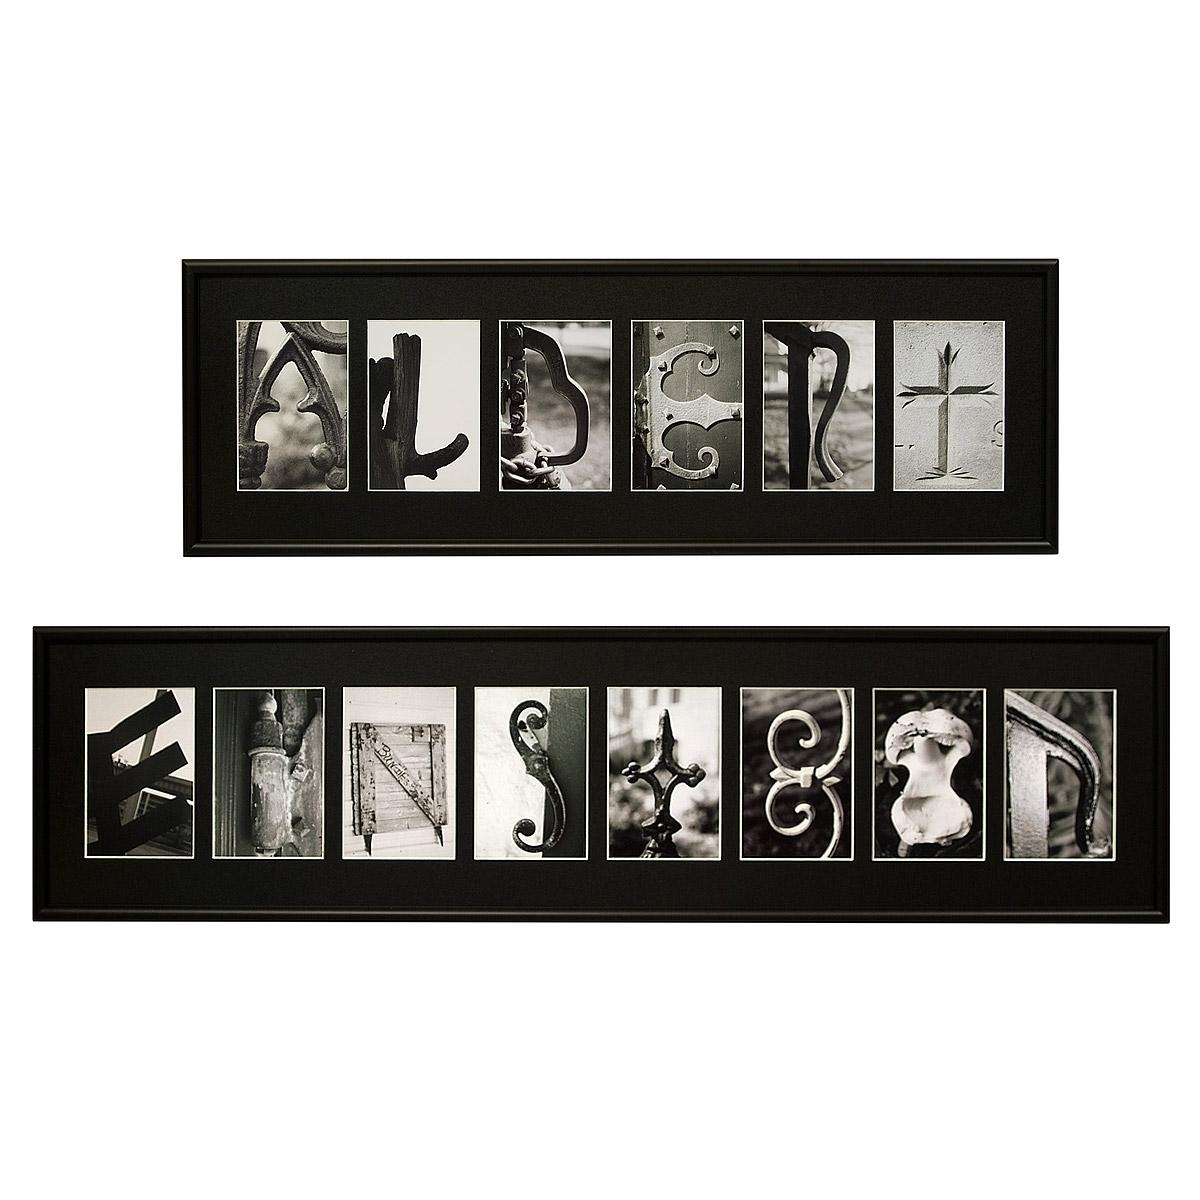 Personalized Photo Art | Unique, Customizable Home Decor Gift Within Personalized Last Name Wall Art (View 3 of 20)